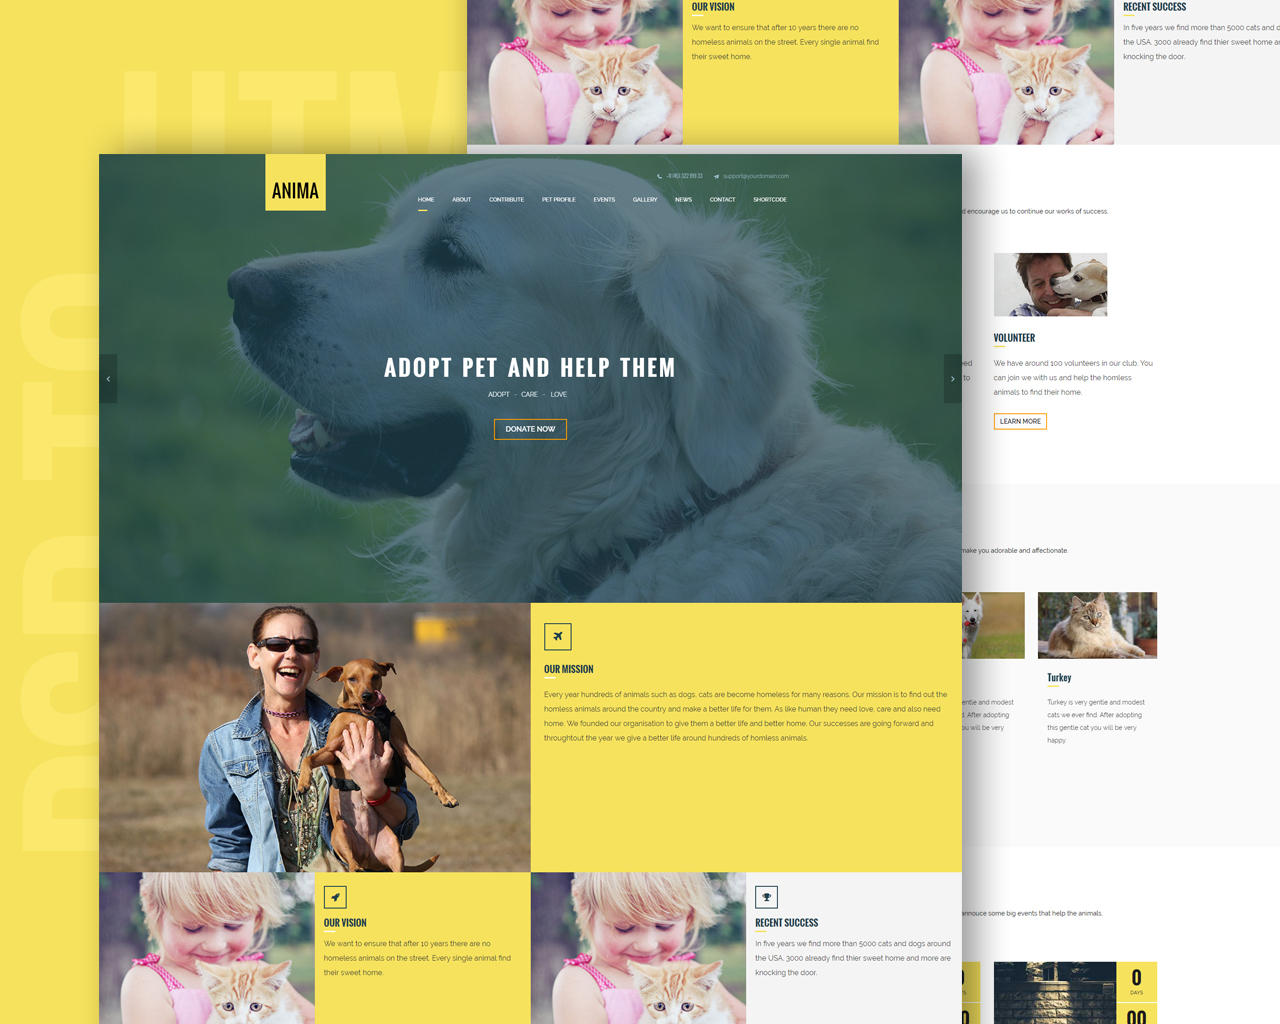 PSD To HTML 5 by CreativeShop7 - 101698